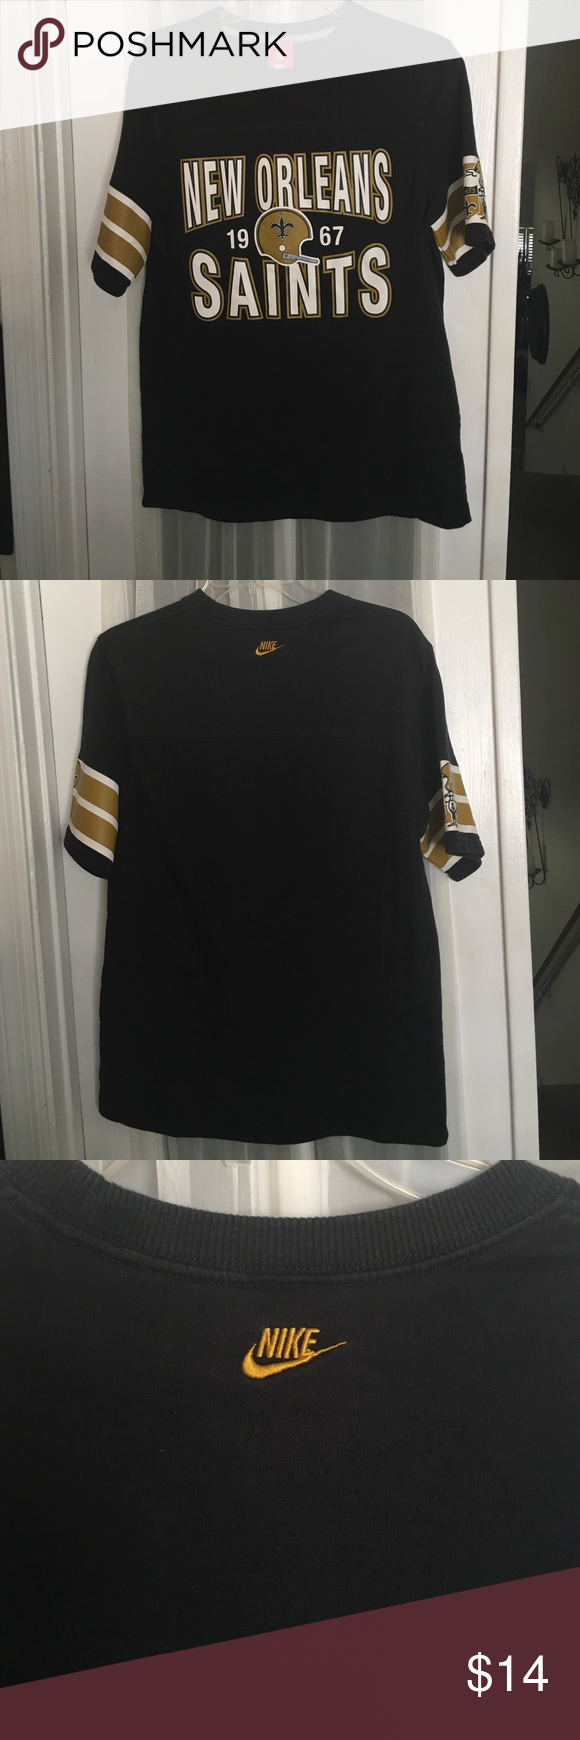 Png image of new orleans saints jersey dress